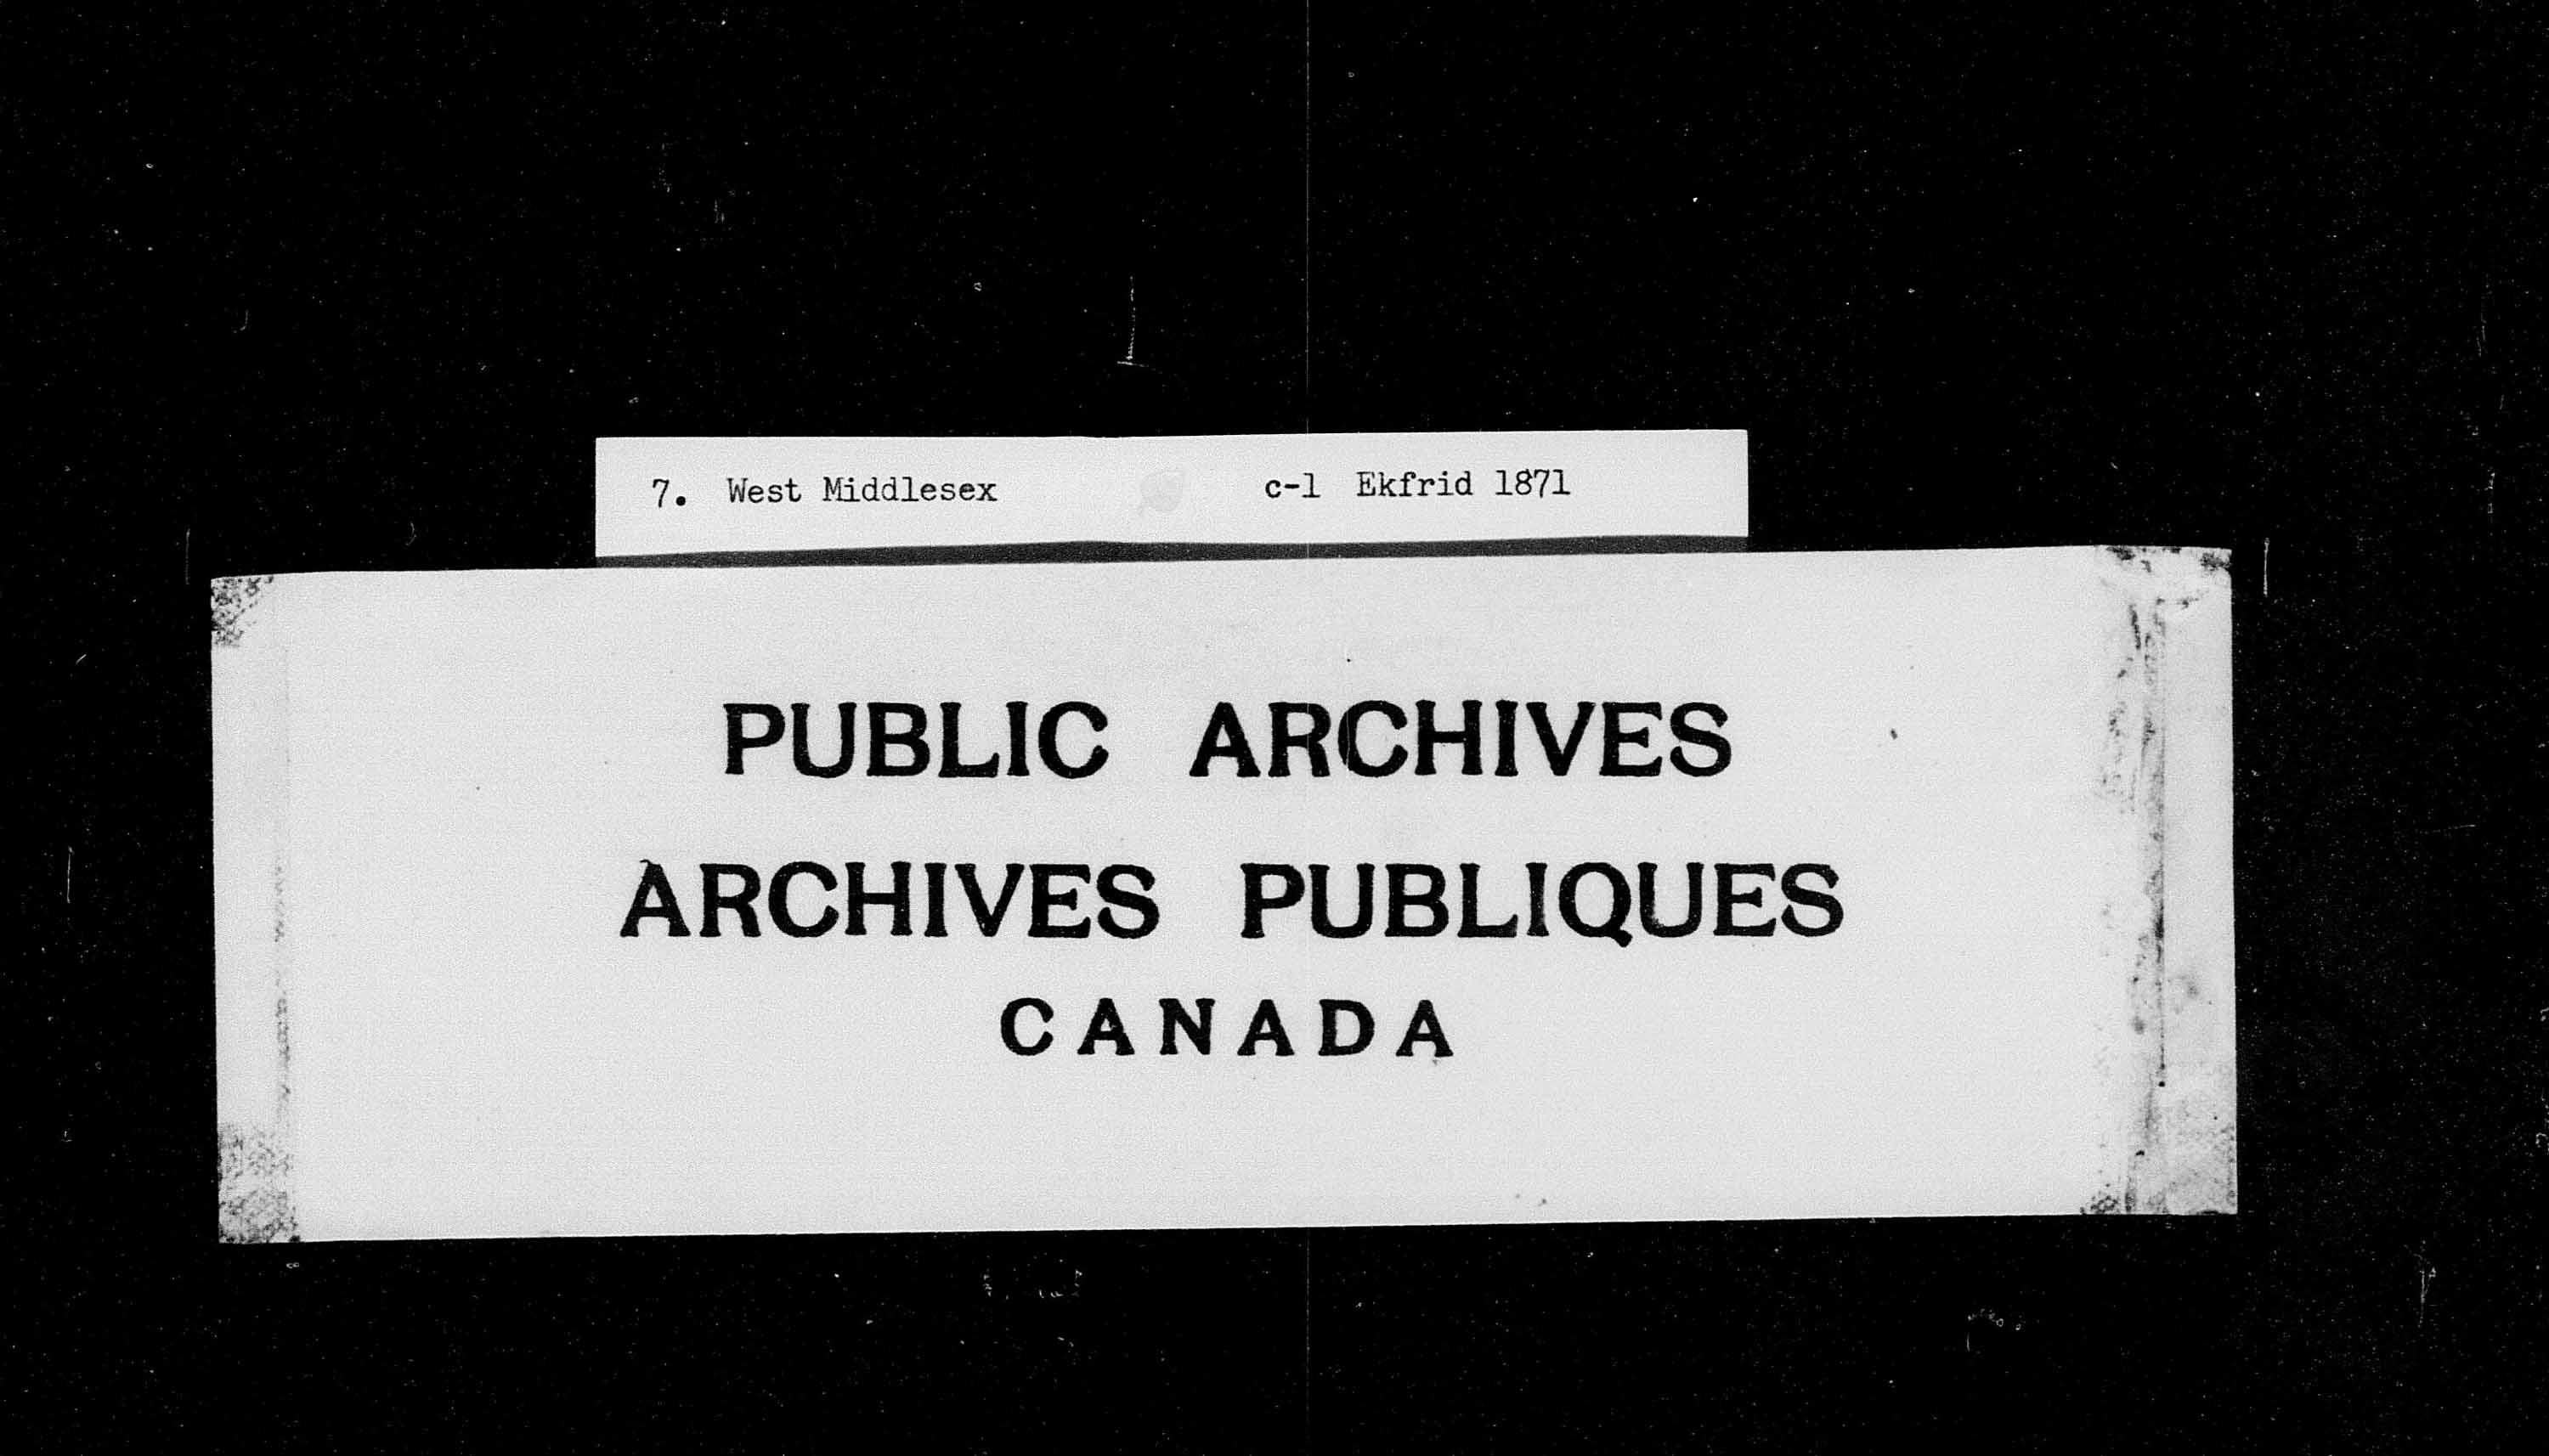 Title: Census of Canada, 1871 - Mikan Number: 142105 - Microform: c-9900